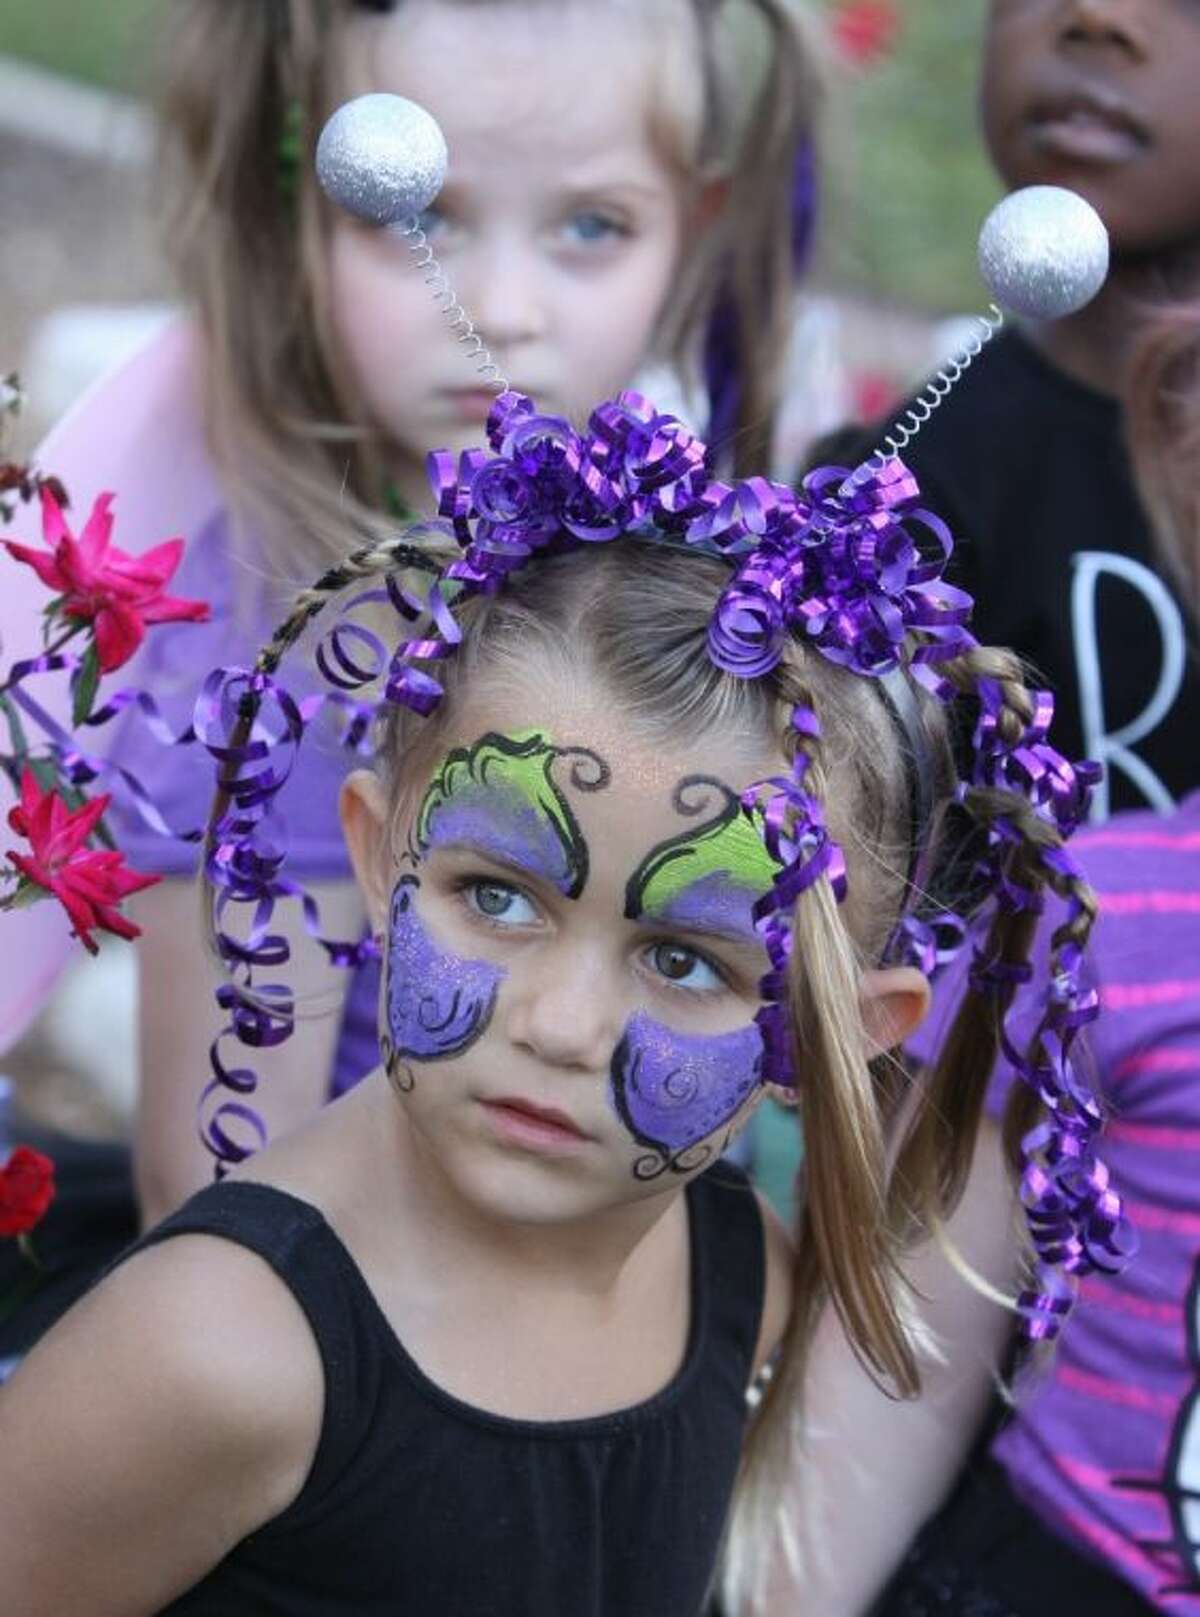 Caitlin Bloom, 4, gets ready to perform at the Pumpkin Patch at Holy Cross Episcopal Church in Sugar Land on Saturday, Oct. 26.